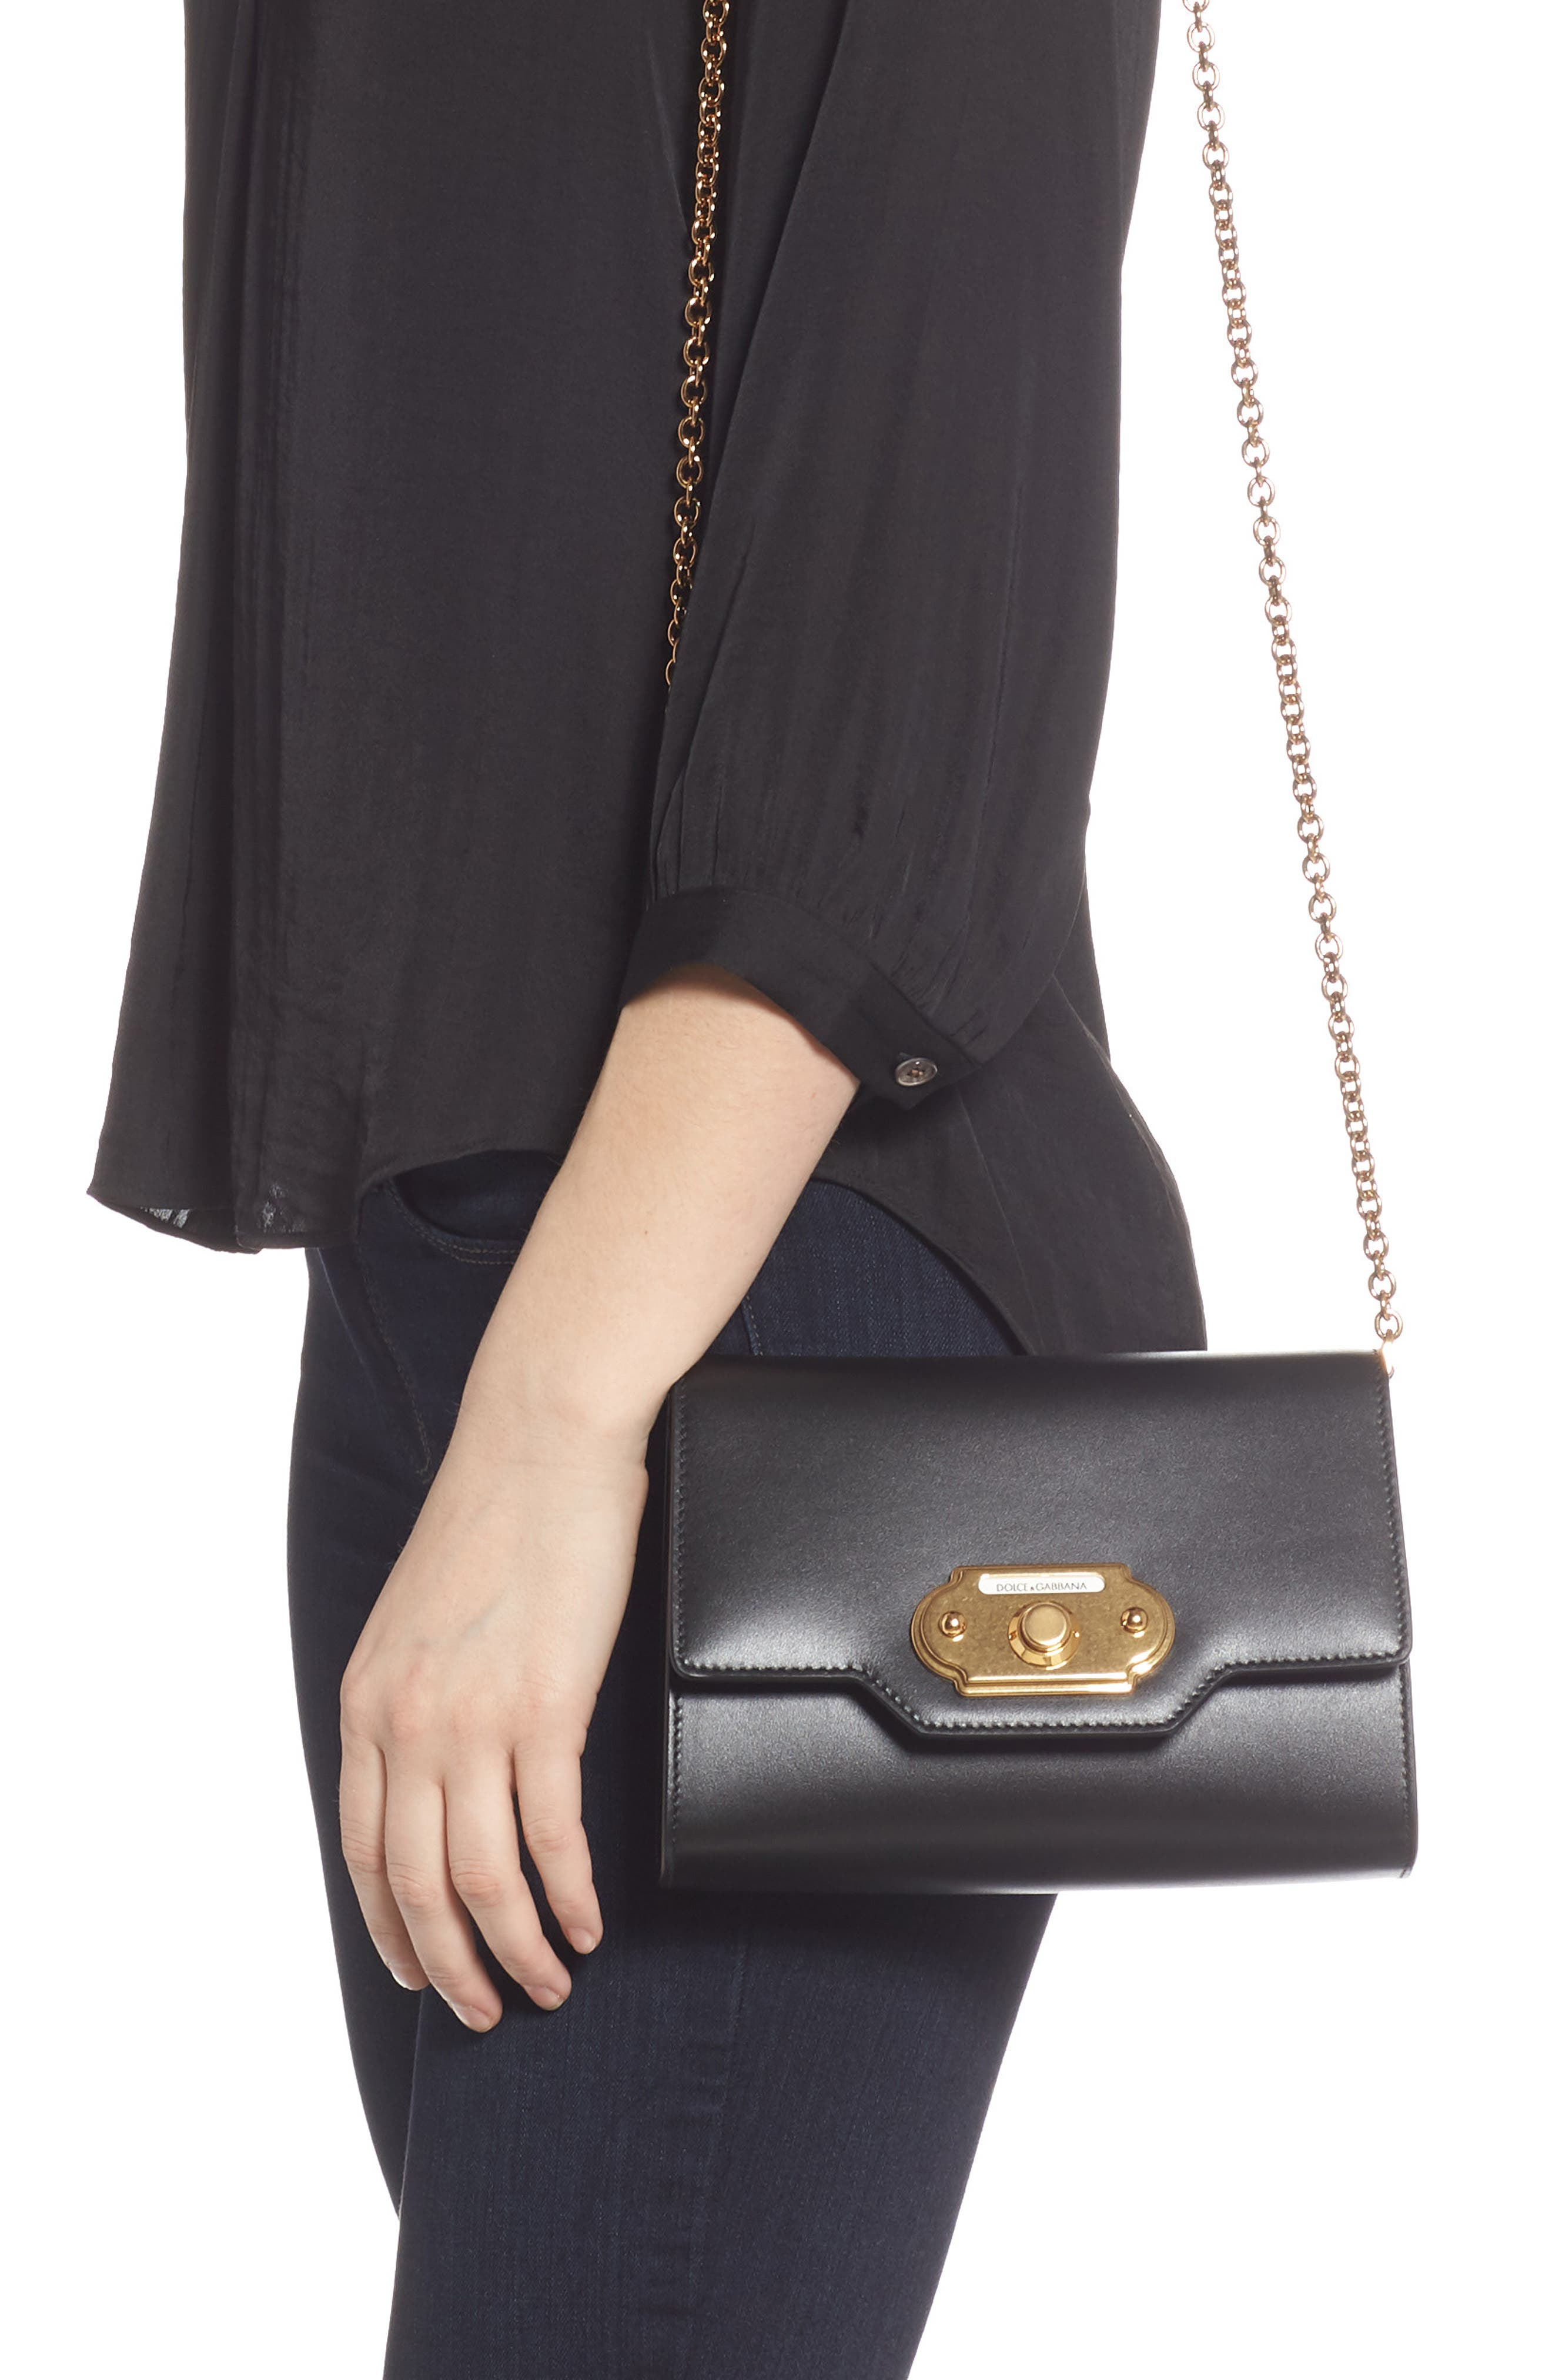 DOLCE&GABBANA, Leather Clutch, Alternate thumbnail 2, color, NERO